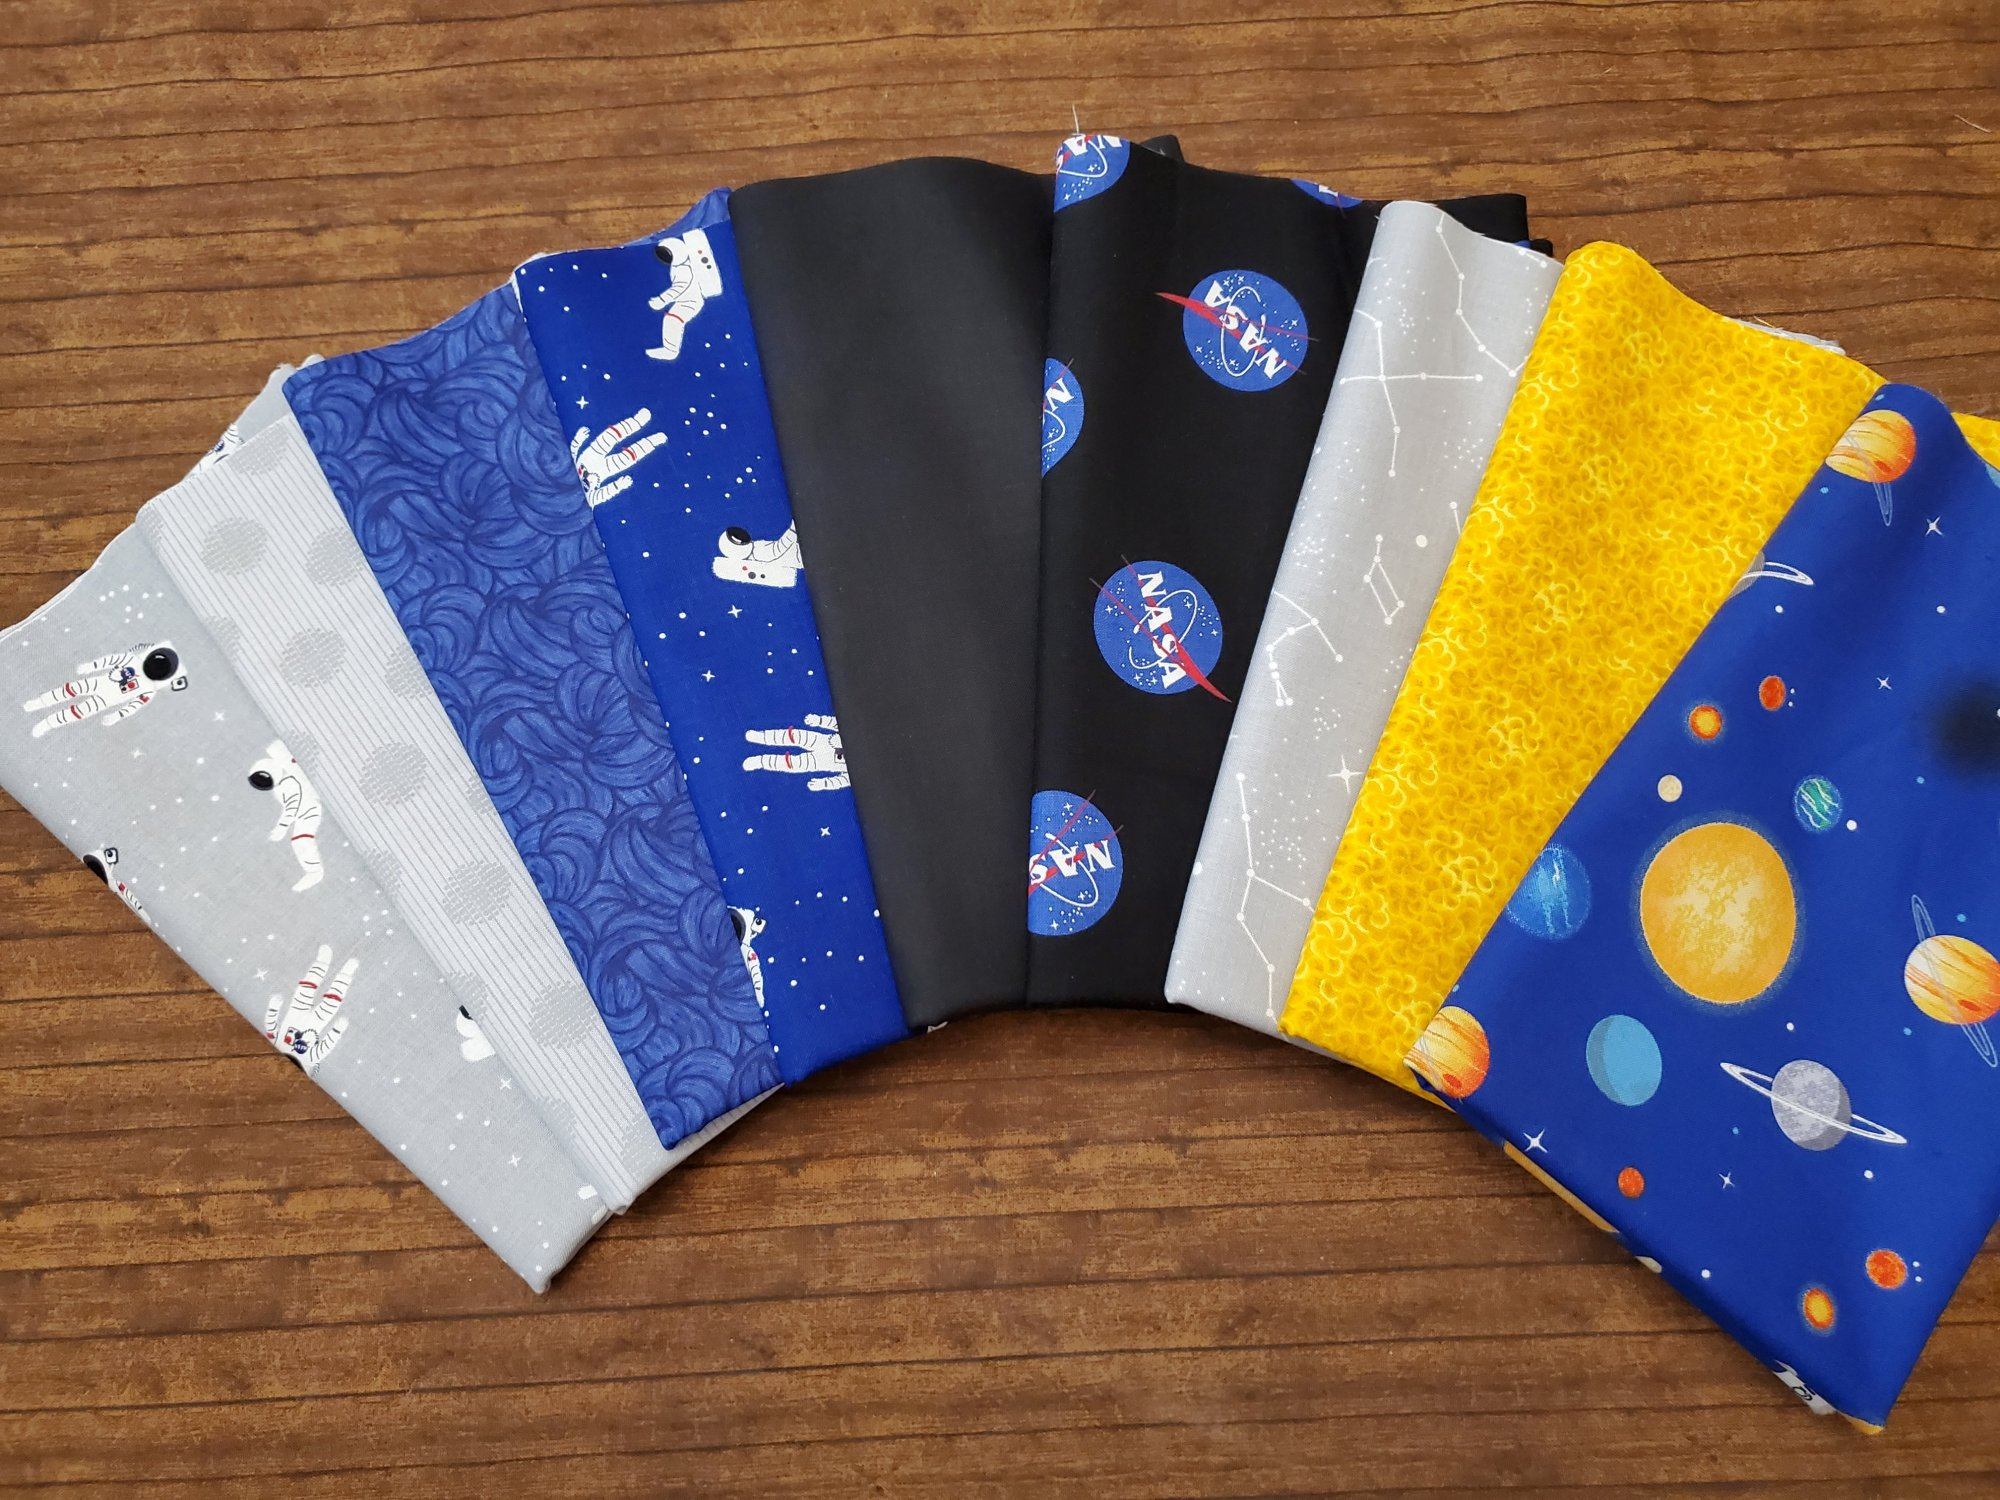 NASA Space Set by Riley Blake Fabrics and others - 9 Piece Half Yard Bundle Pack - Astronaut, Space, Sun, Moon, Constellations